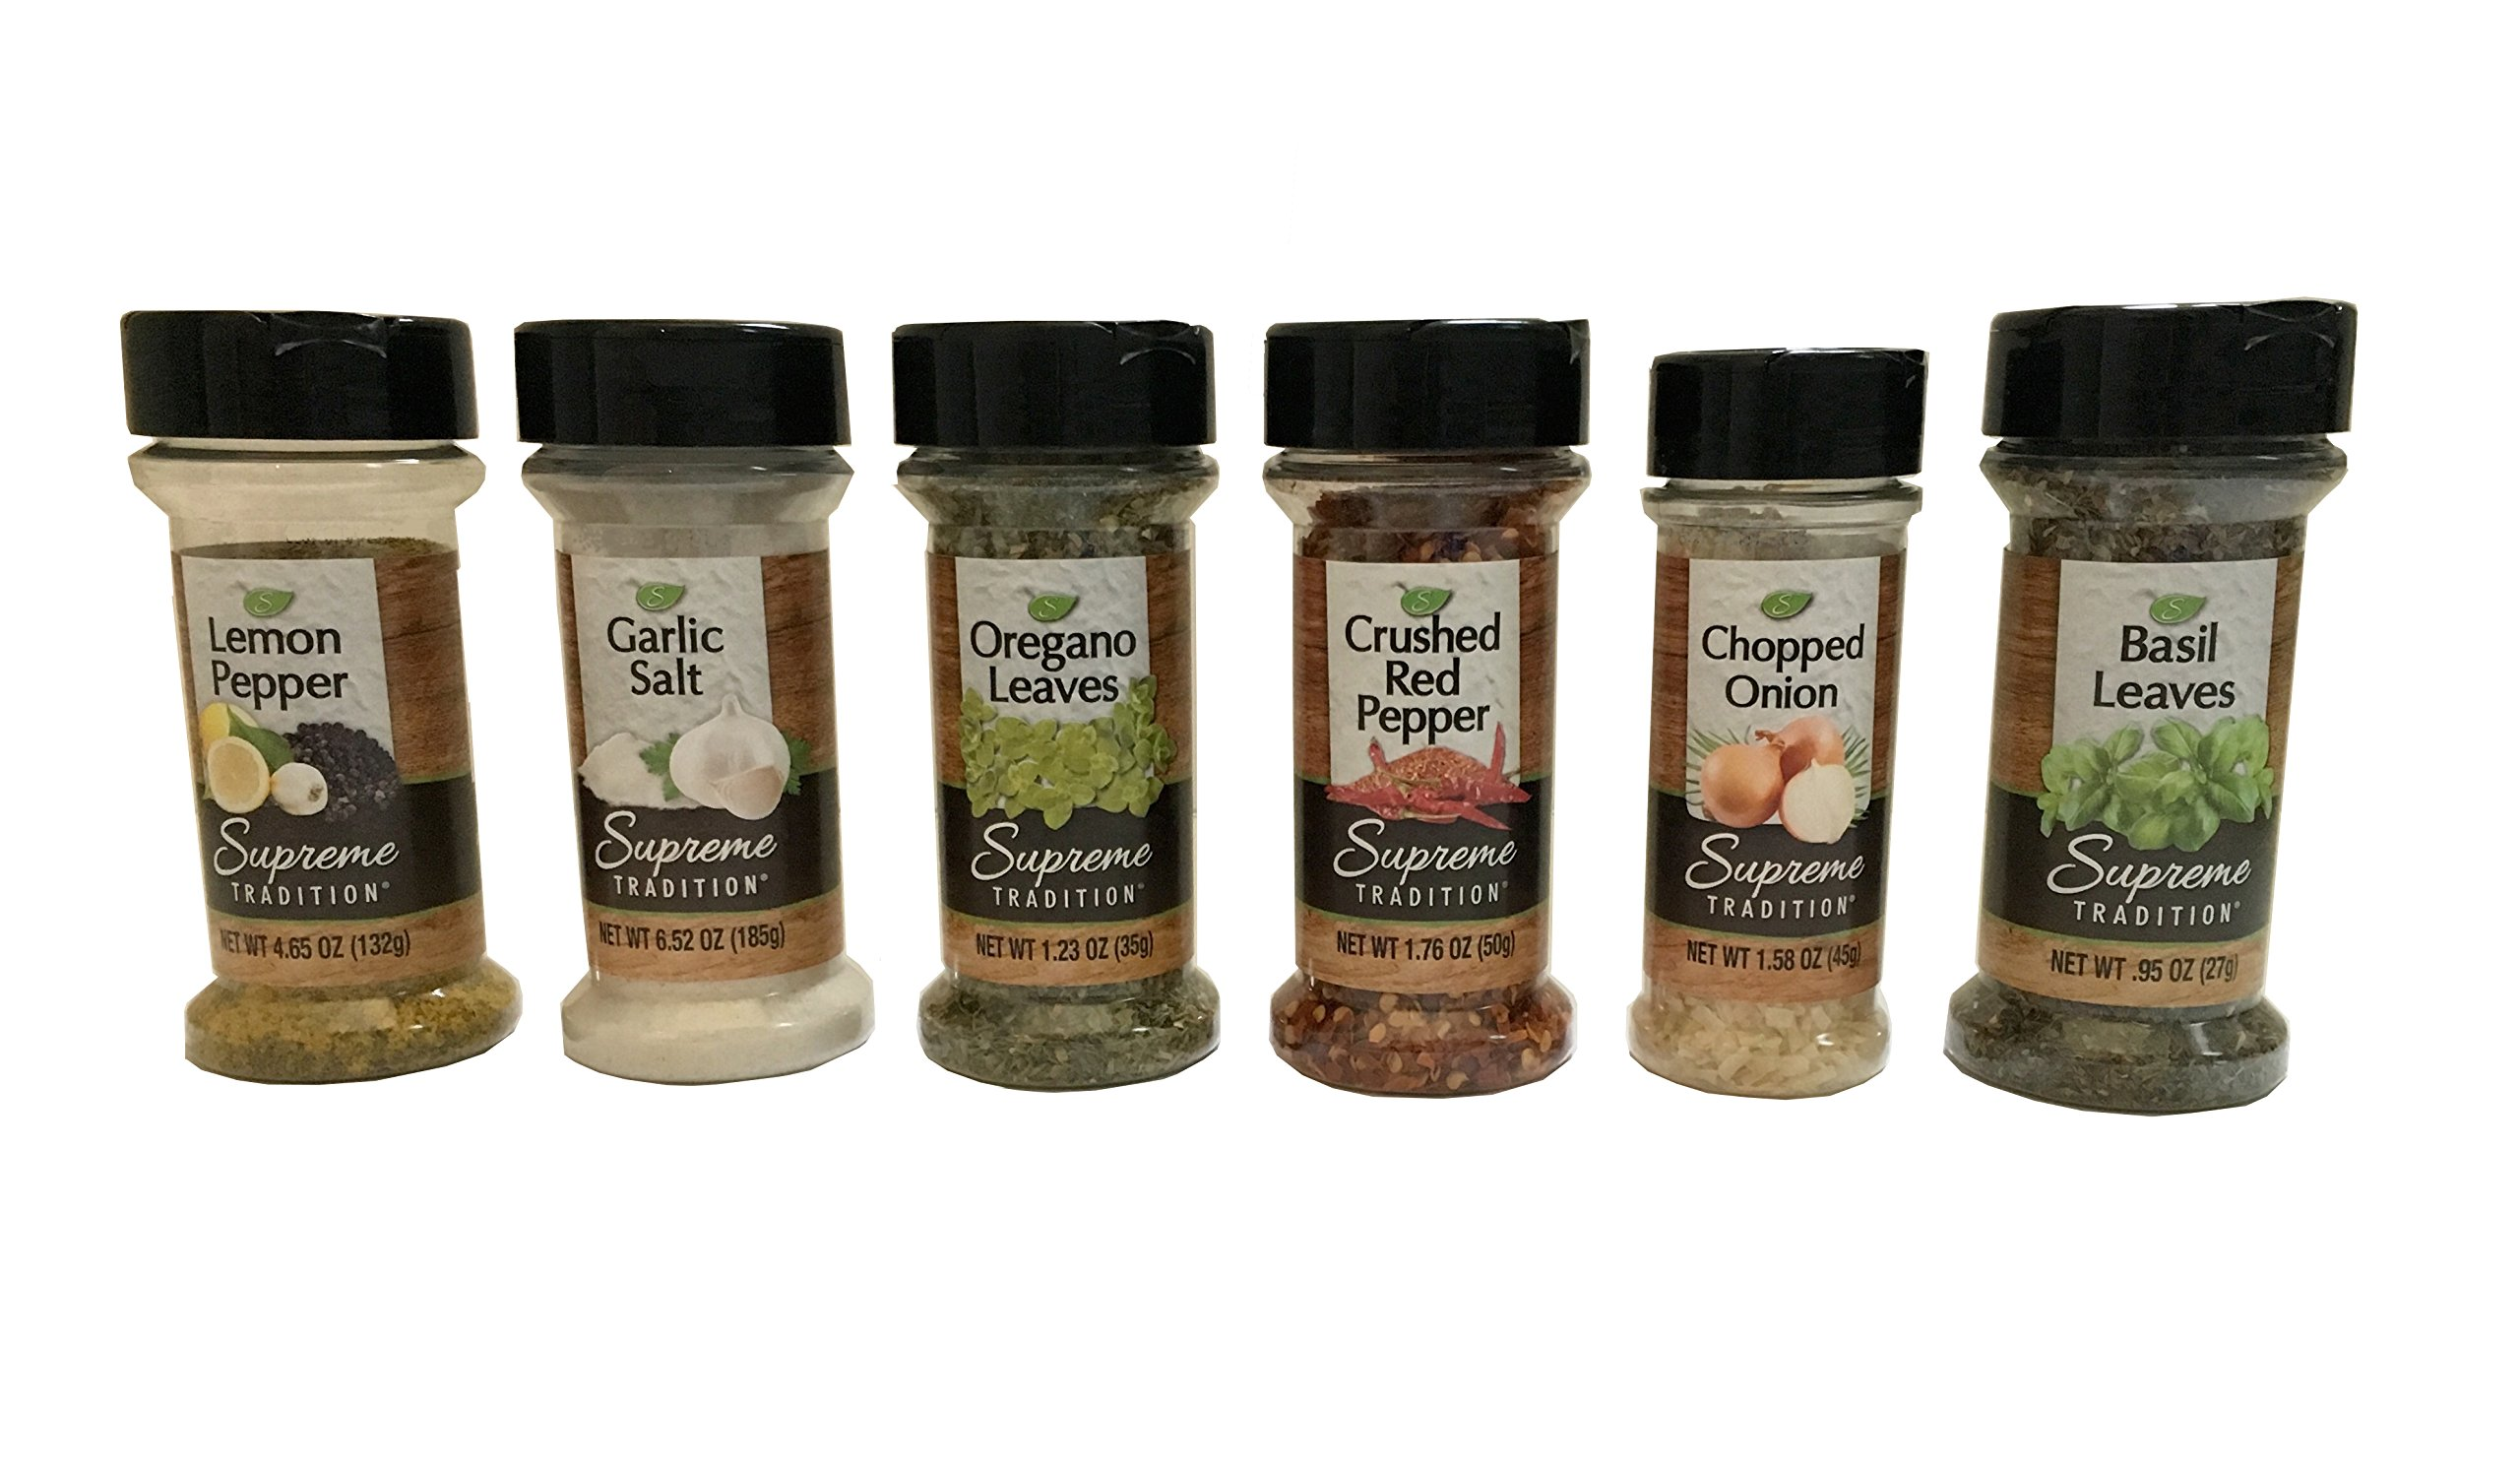 Supreme Spice Starter Set #2 with 6 Essential Spices for Cooking Basics – 6 Piece Spice Gift Set Includes Lemon Pepper, Garlic Salt, Oregano Leaves, Crushed Red Pepper, Chopped Onion and Basil Leaves